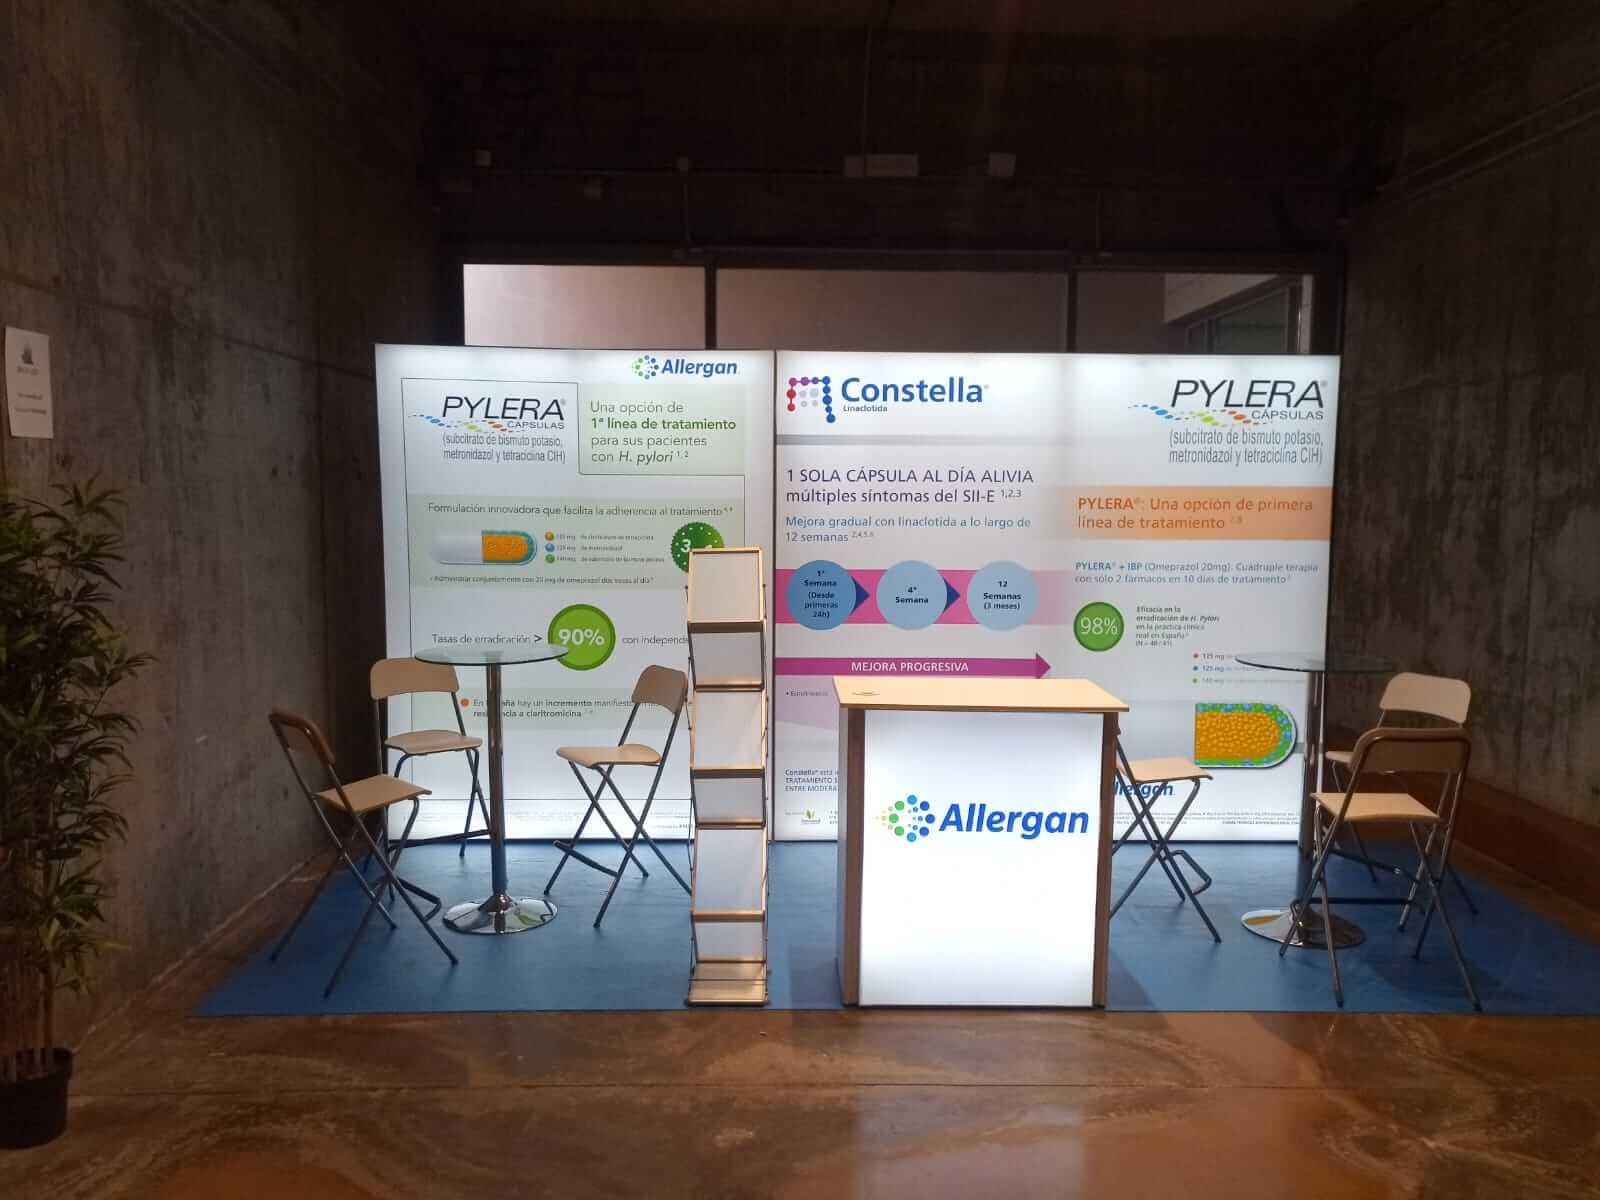 Brightwall Display Stand for Allergan Pharma by Nomadic Display